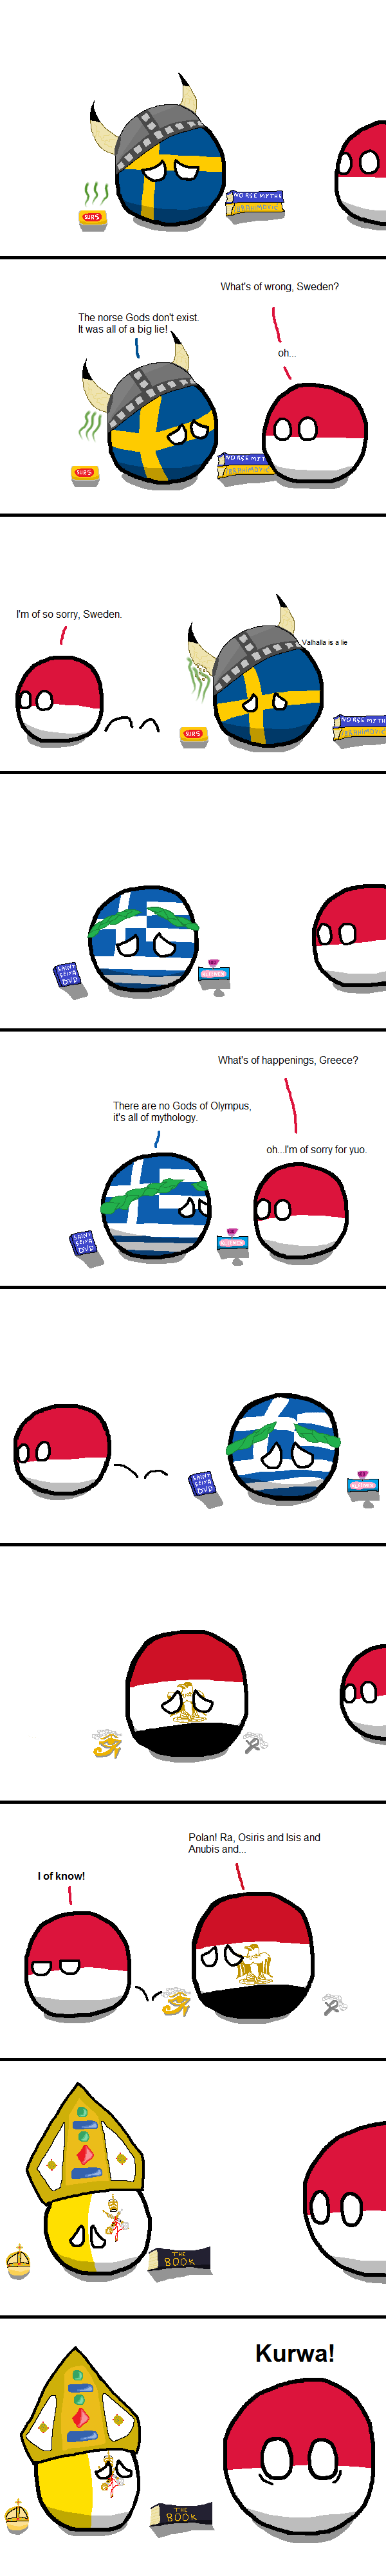 The Egypt Of Old Country Balls